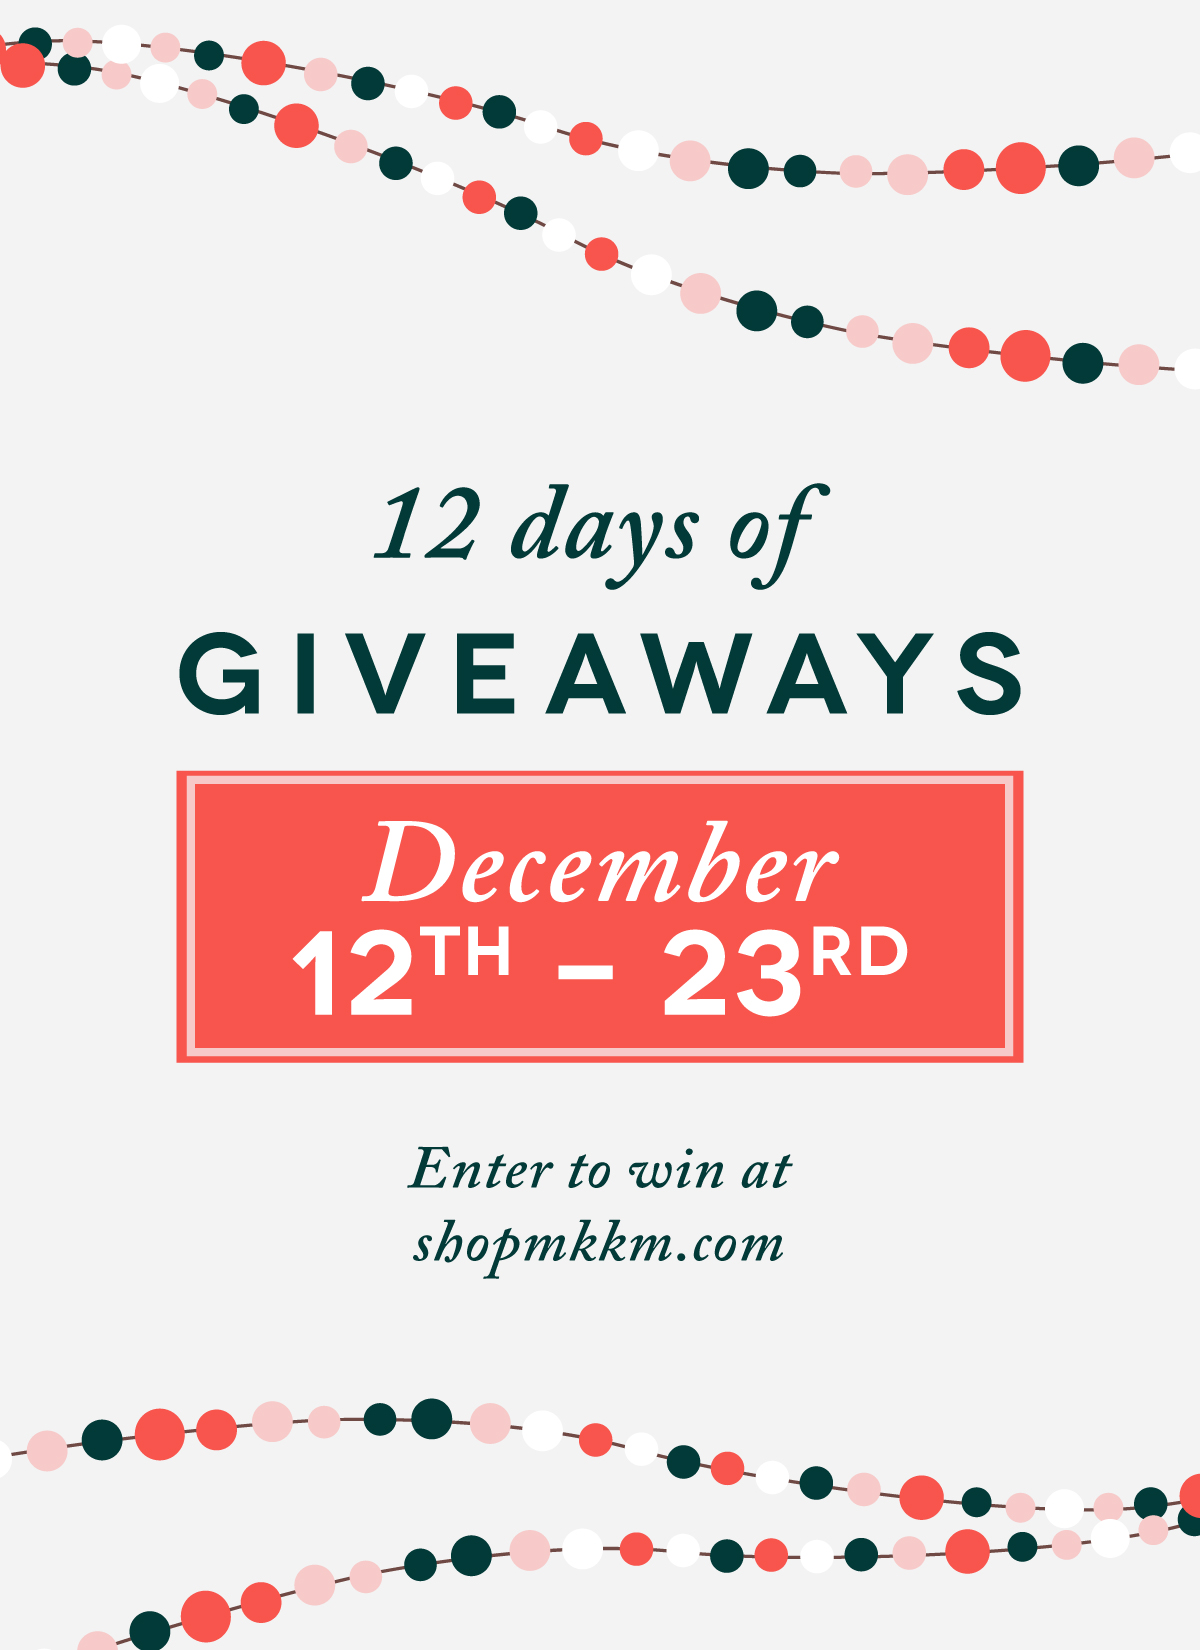 12 Days of Giveaways by MKKM